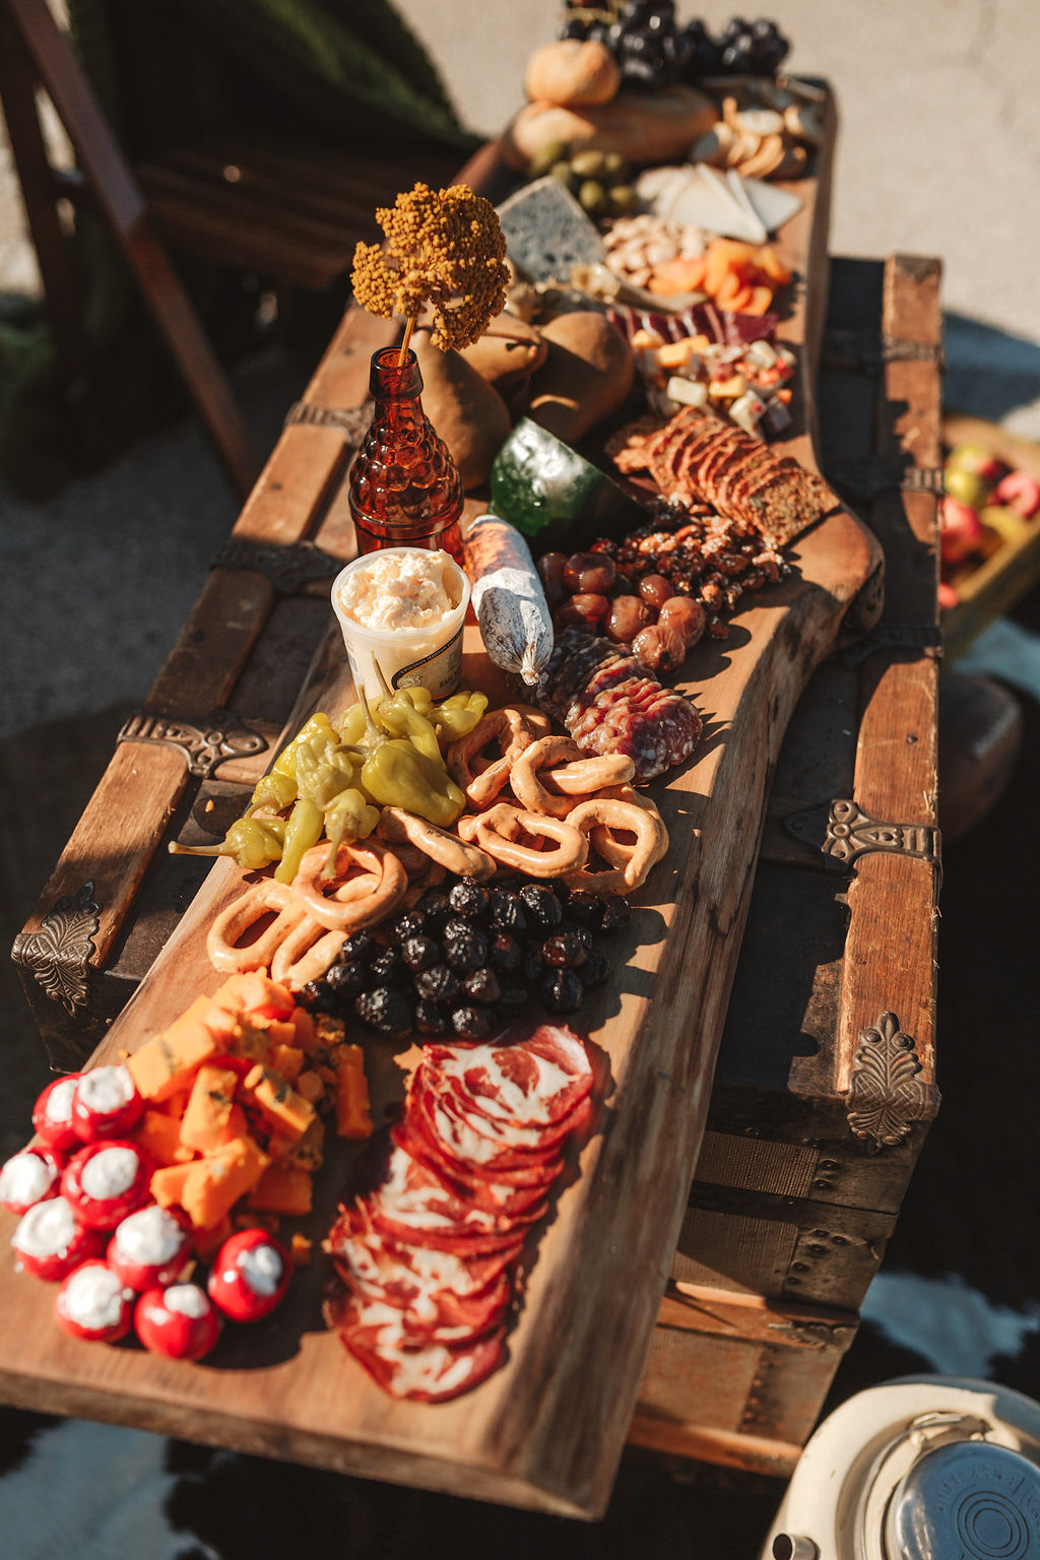 Charcuterie Boards created curated with meats, cheese, olives